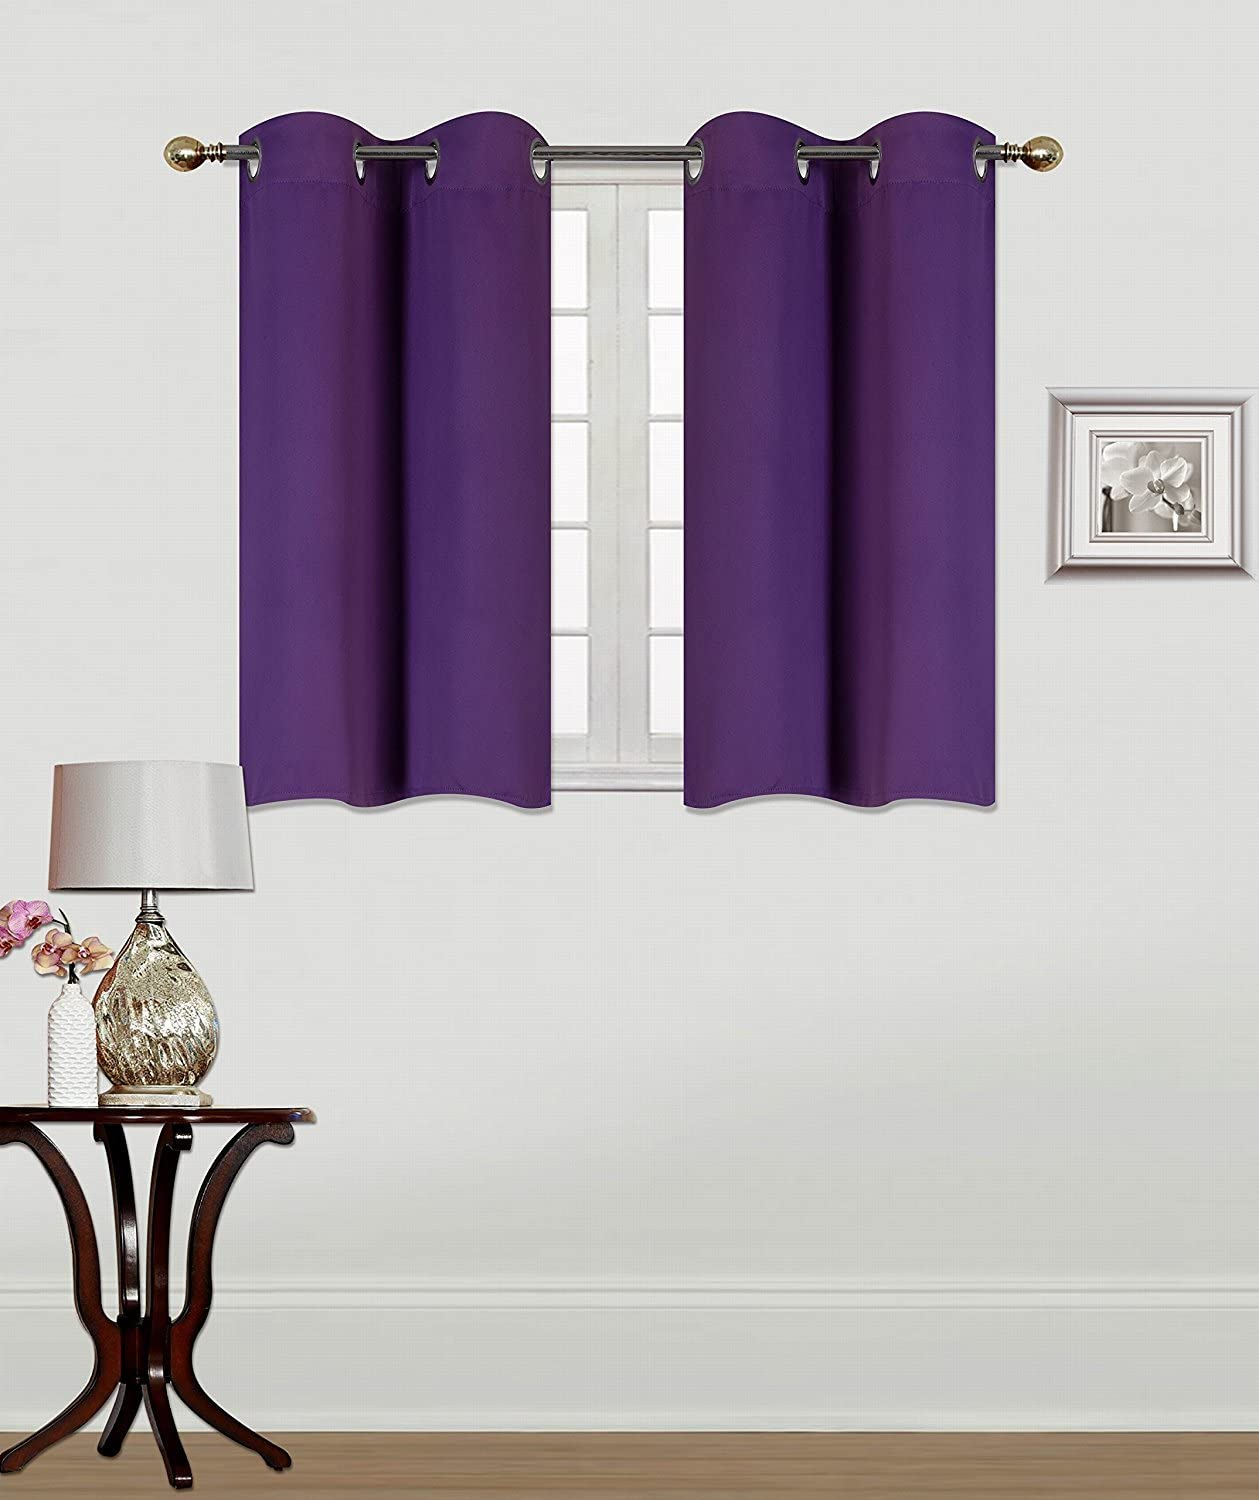 """Elegant Home 2 Panels Tiers Grommets Window Treatment Curtain Thermal Heavy Thick Insulated Blackout Drapes Short Panel 30"""" W X 36"""" L Each for Kitchen Bathroom or Any Small Window # K30 (Purple)"""